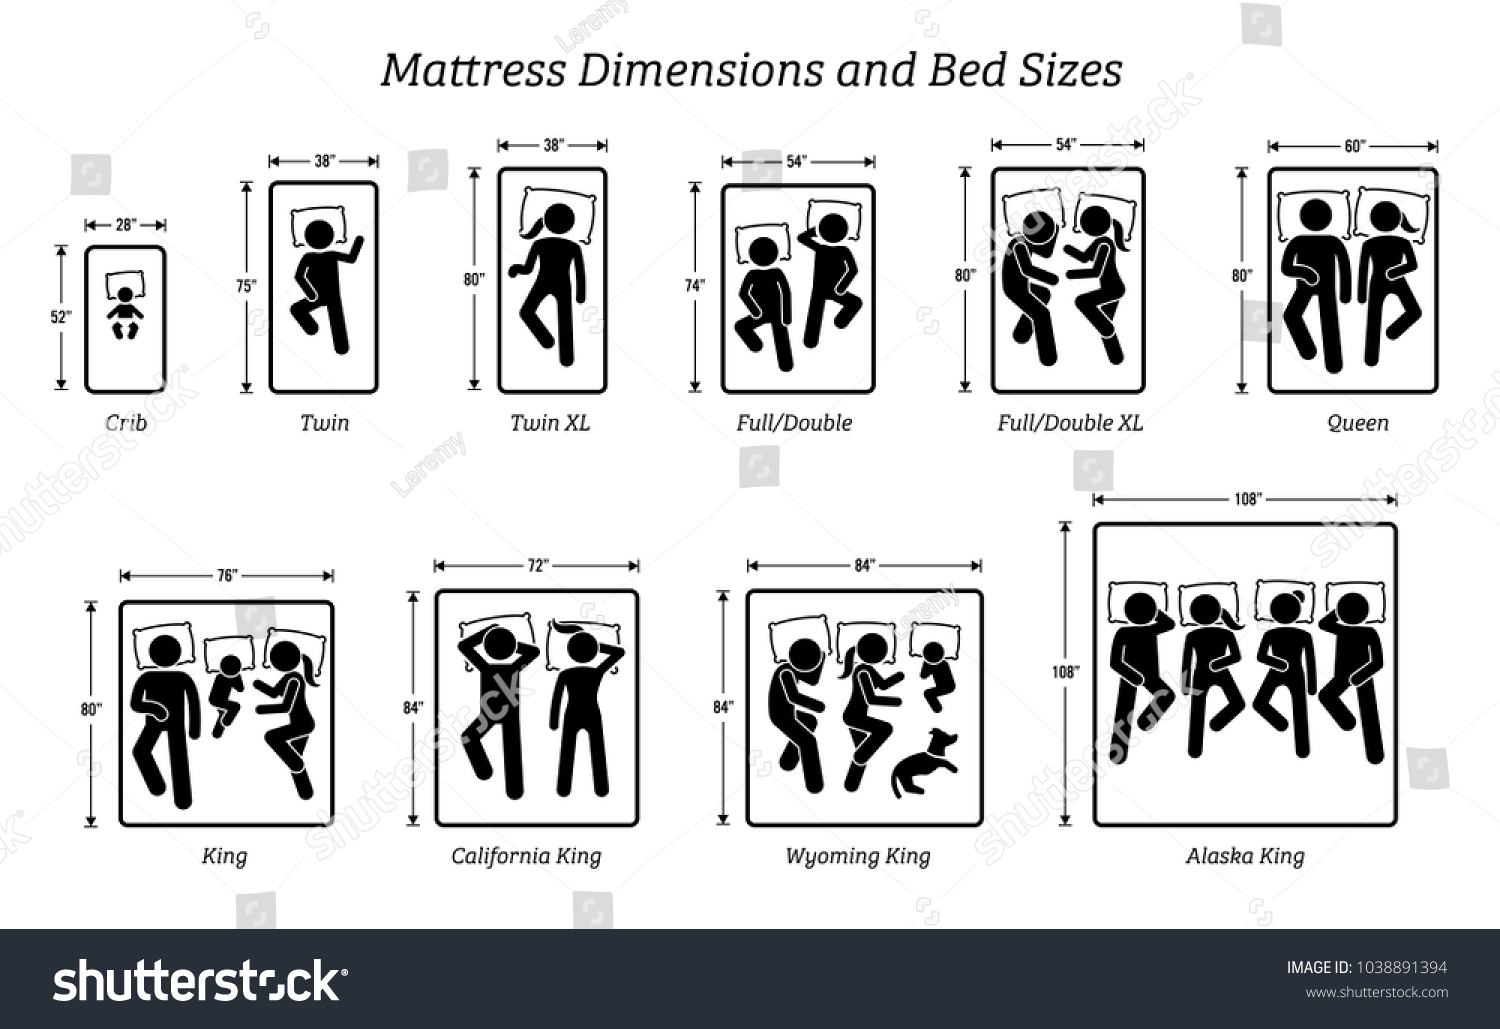 bed sizes dimensions. Mattress Dimensions And Bed Sizes. Pictograms Depict Icons Of People  Sleeping On Different Bed Sizes Dimensions A